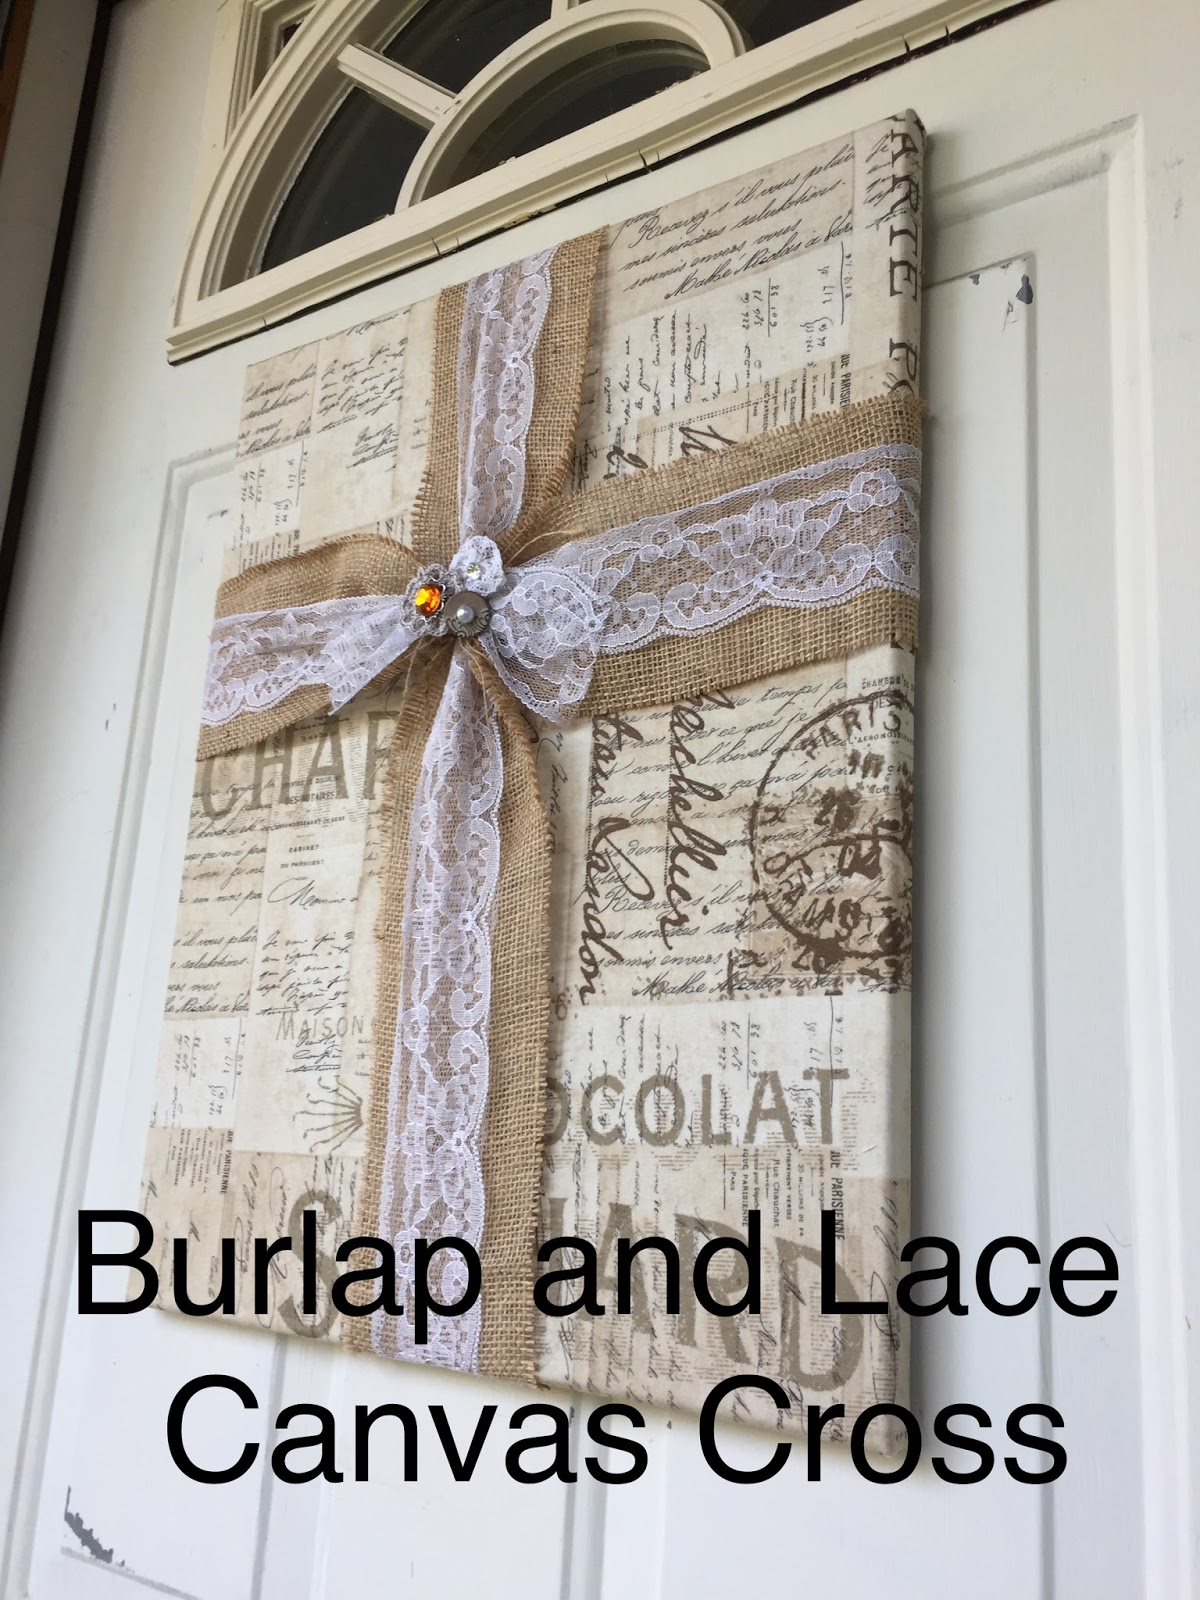 Canvas Burlap and Lace Cross Created in